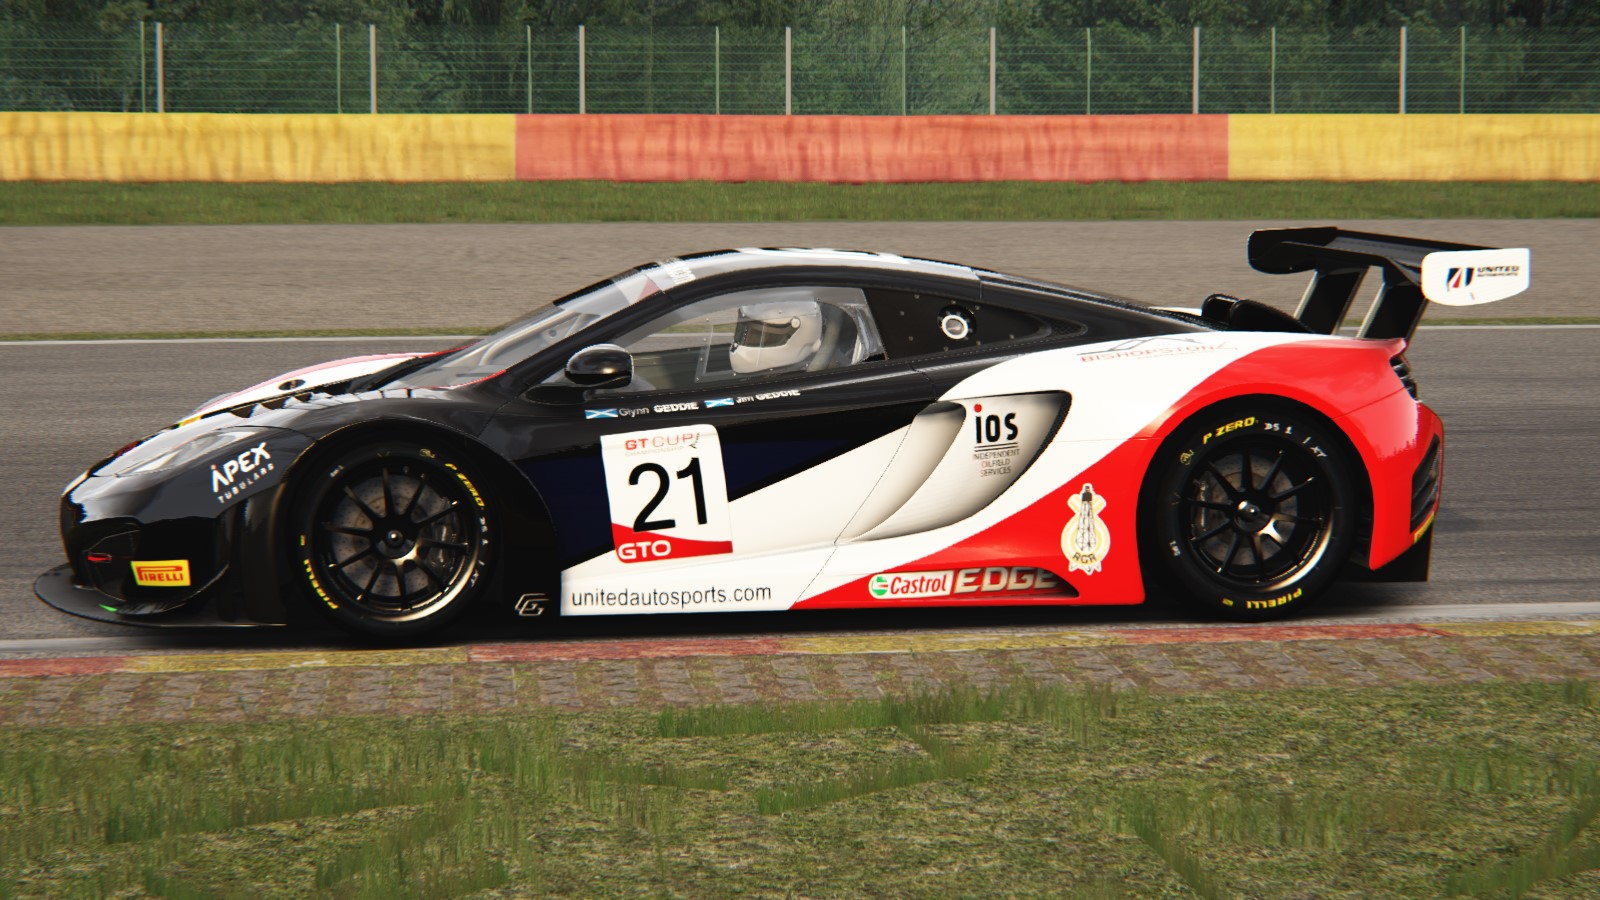 Screenshot_mclaren_mp412c_gt3_spa_17-4-115-5-22-38.jpg